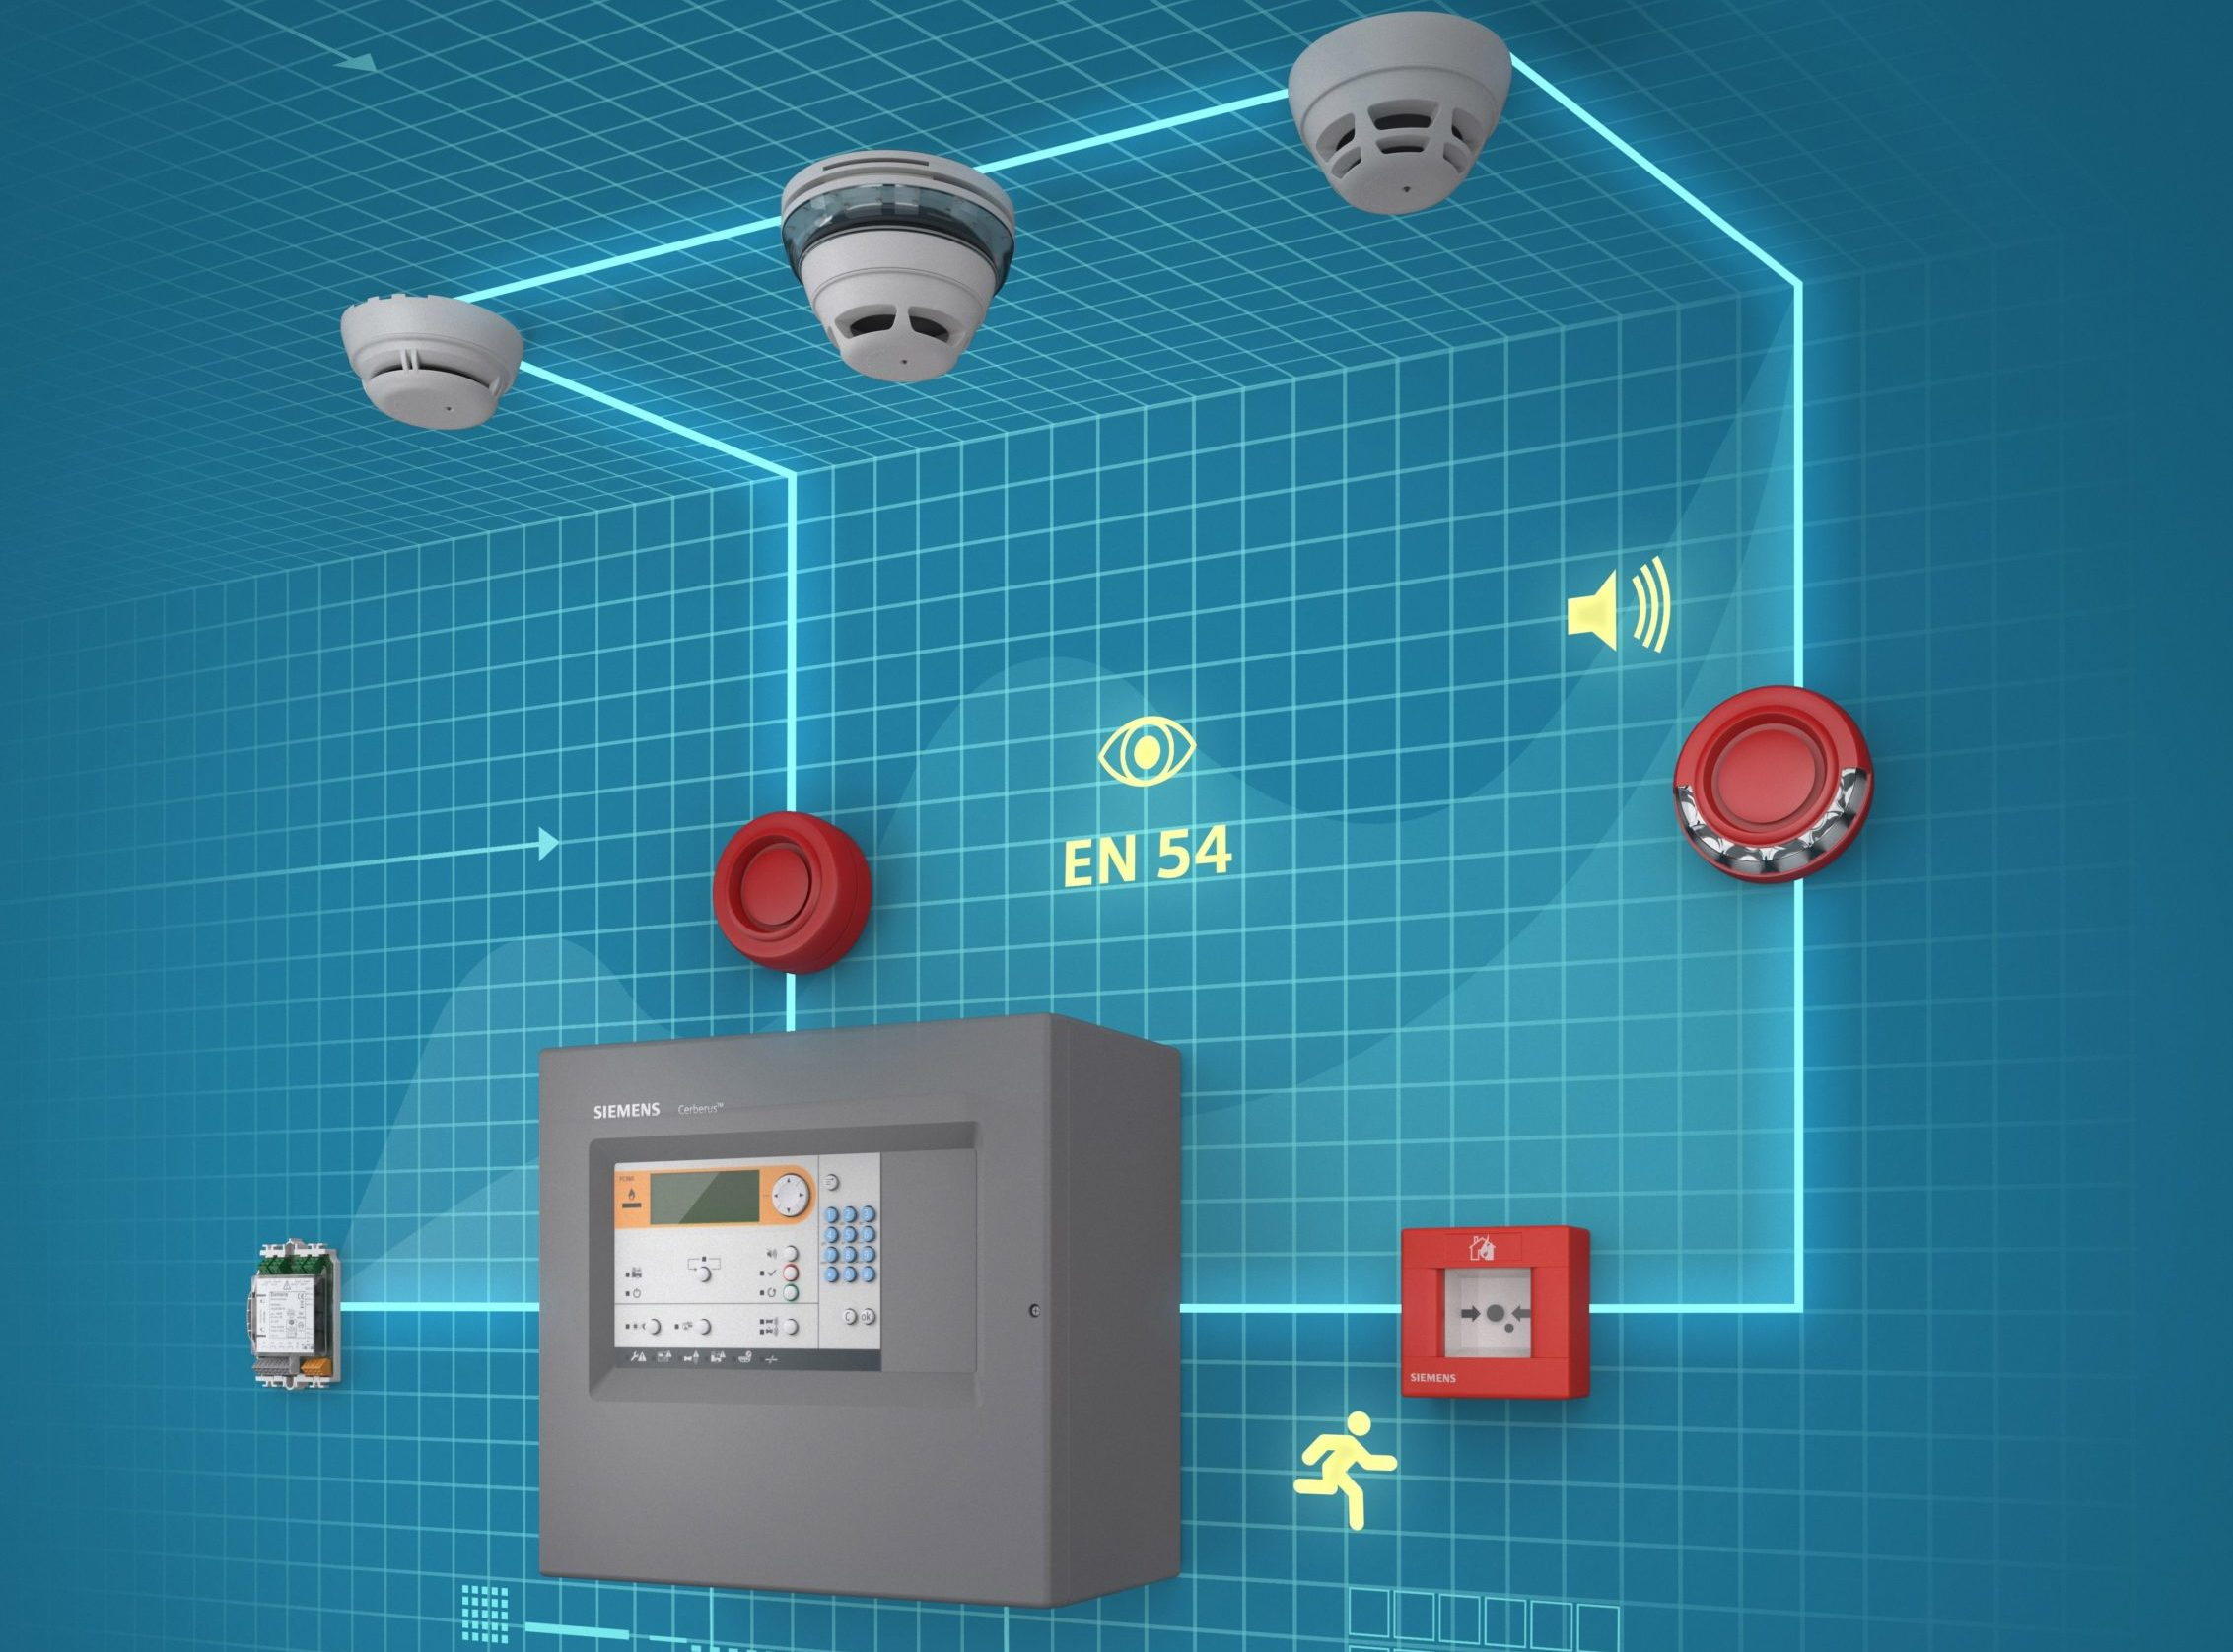 Siemens' fire protection system